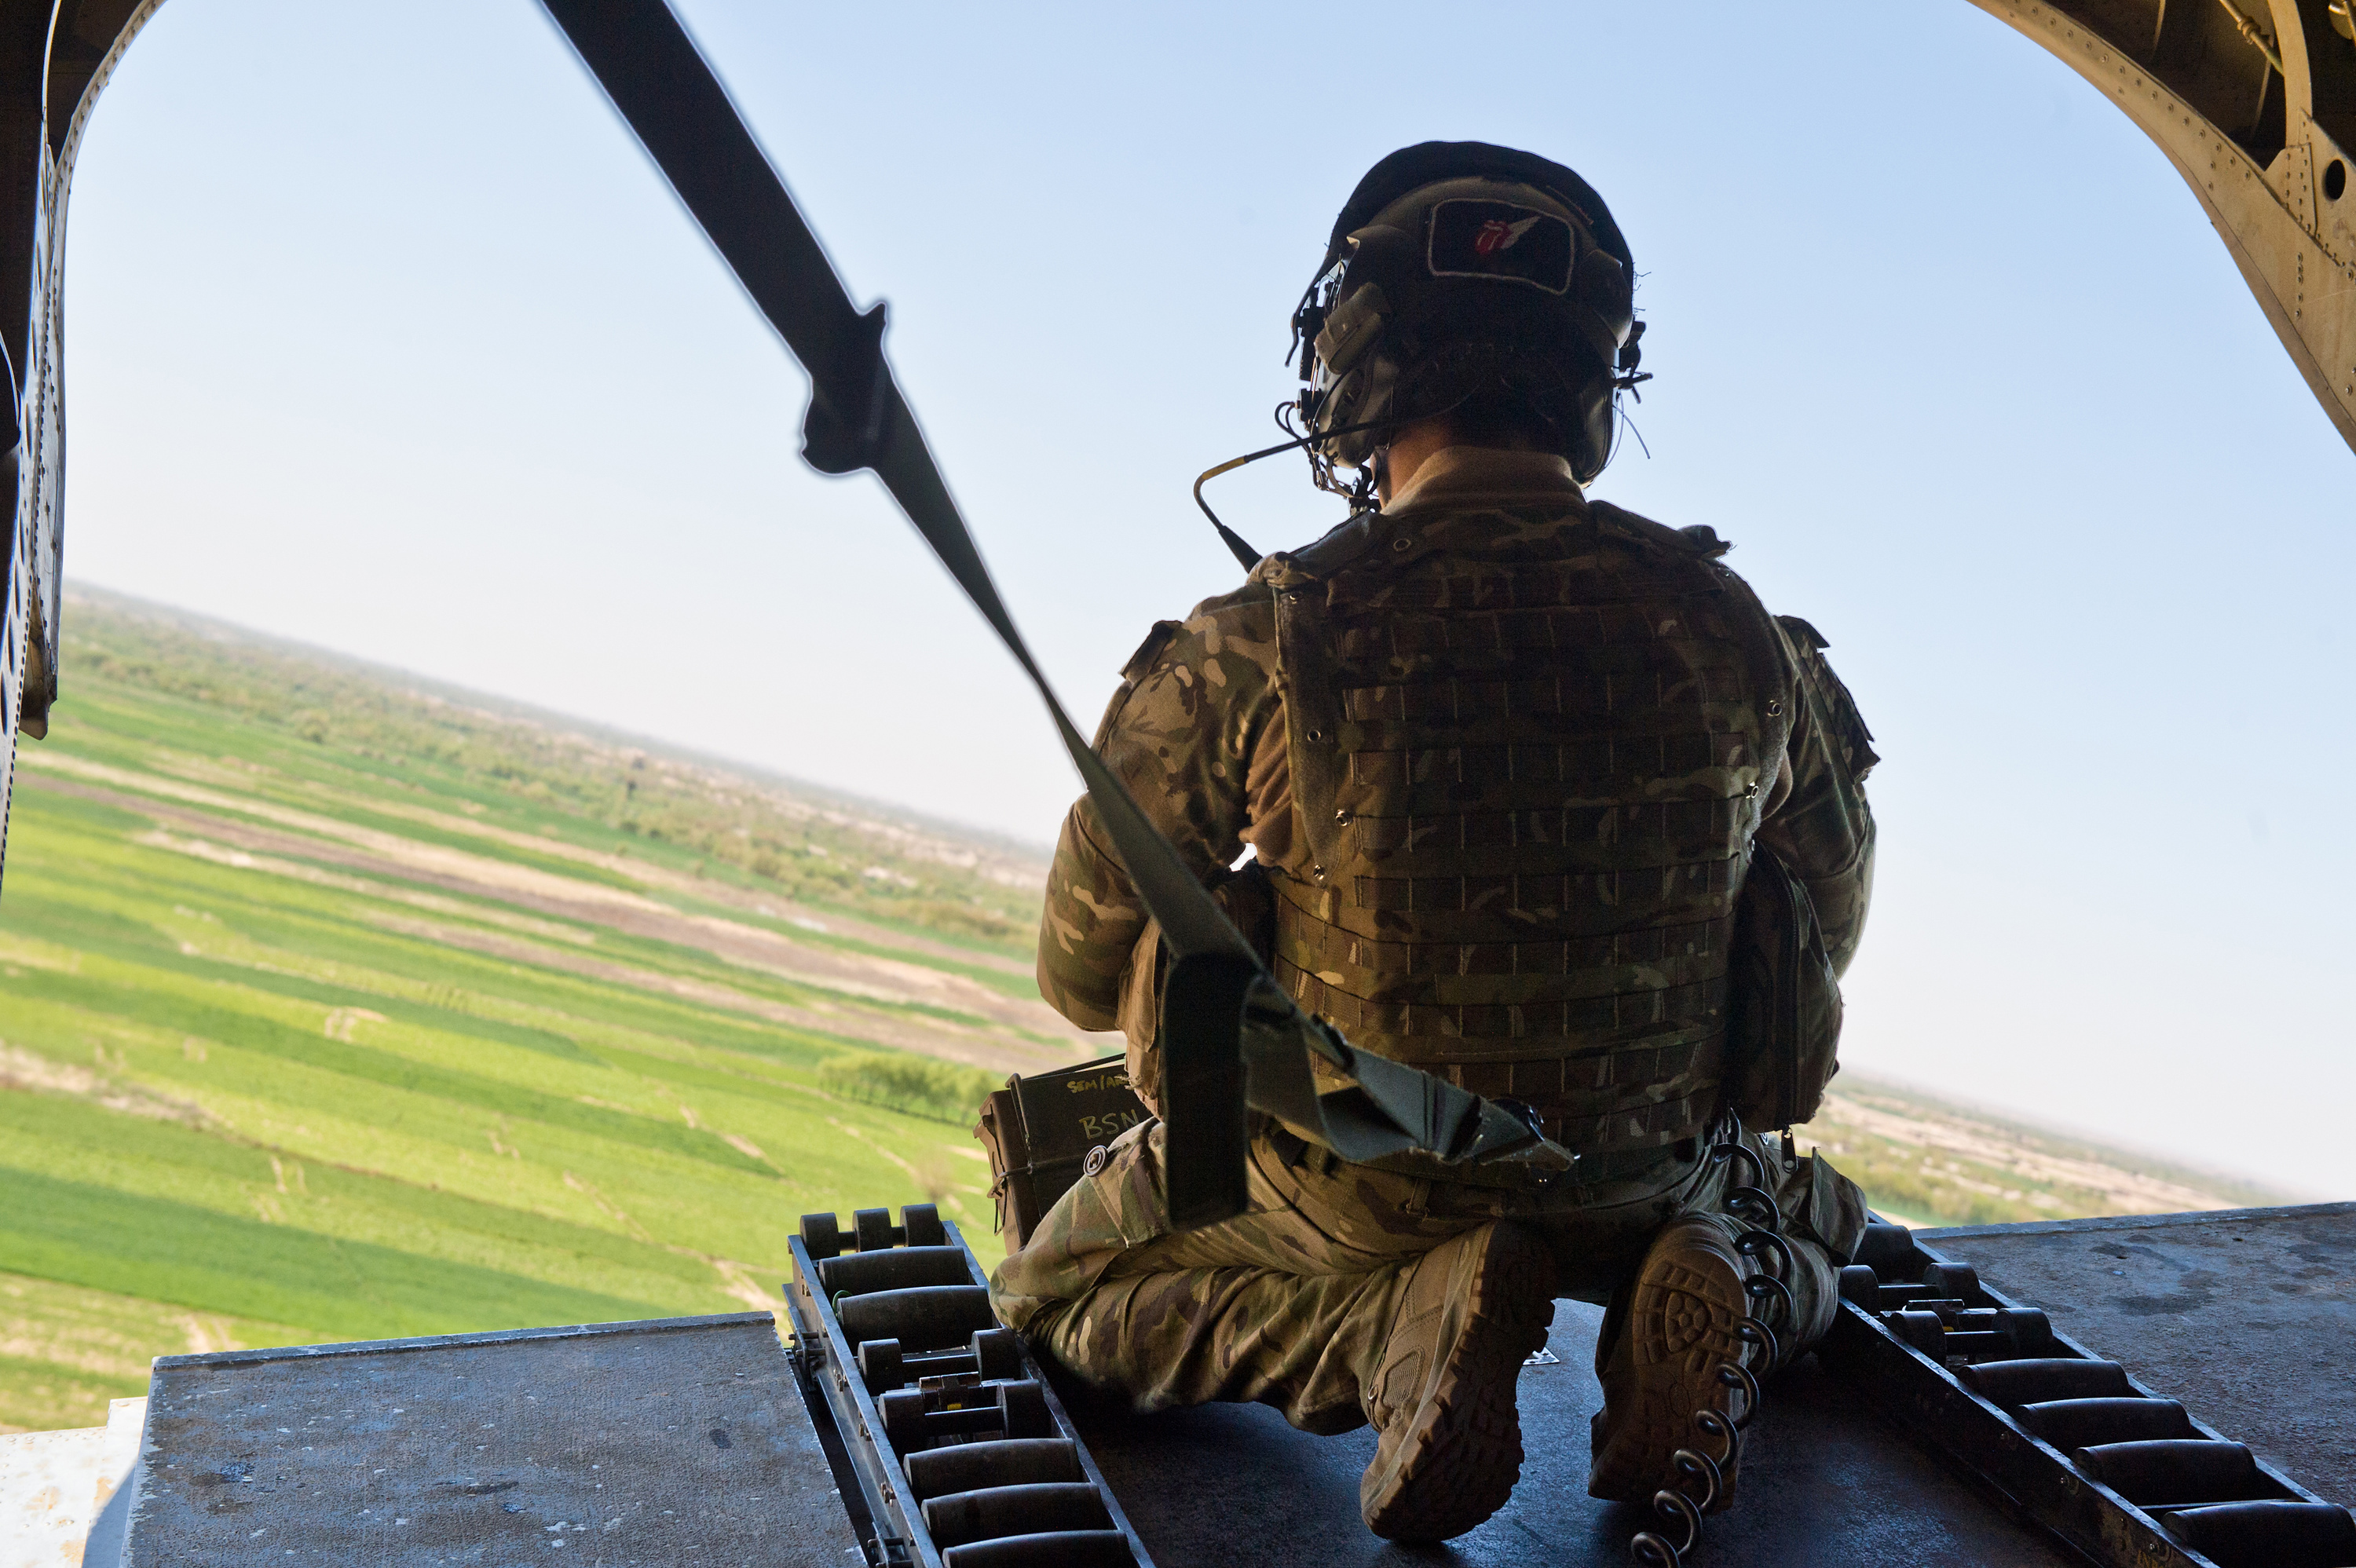 Chinook_Door_Gunner_Over_Afghanistan_MOD_45157906 file chinook door gunner over afghanistan mod 45157906 jpg